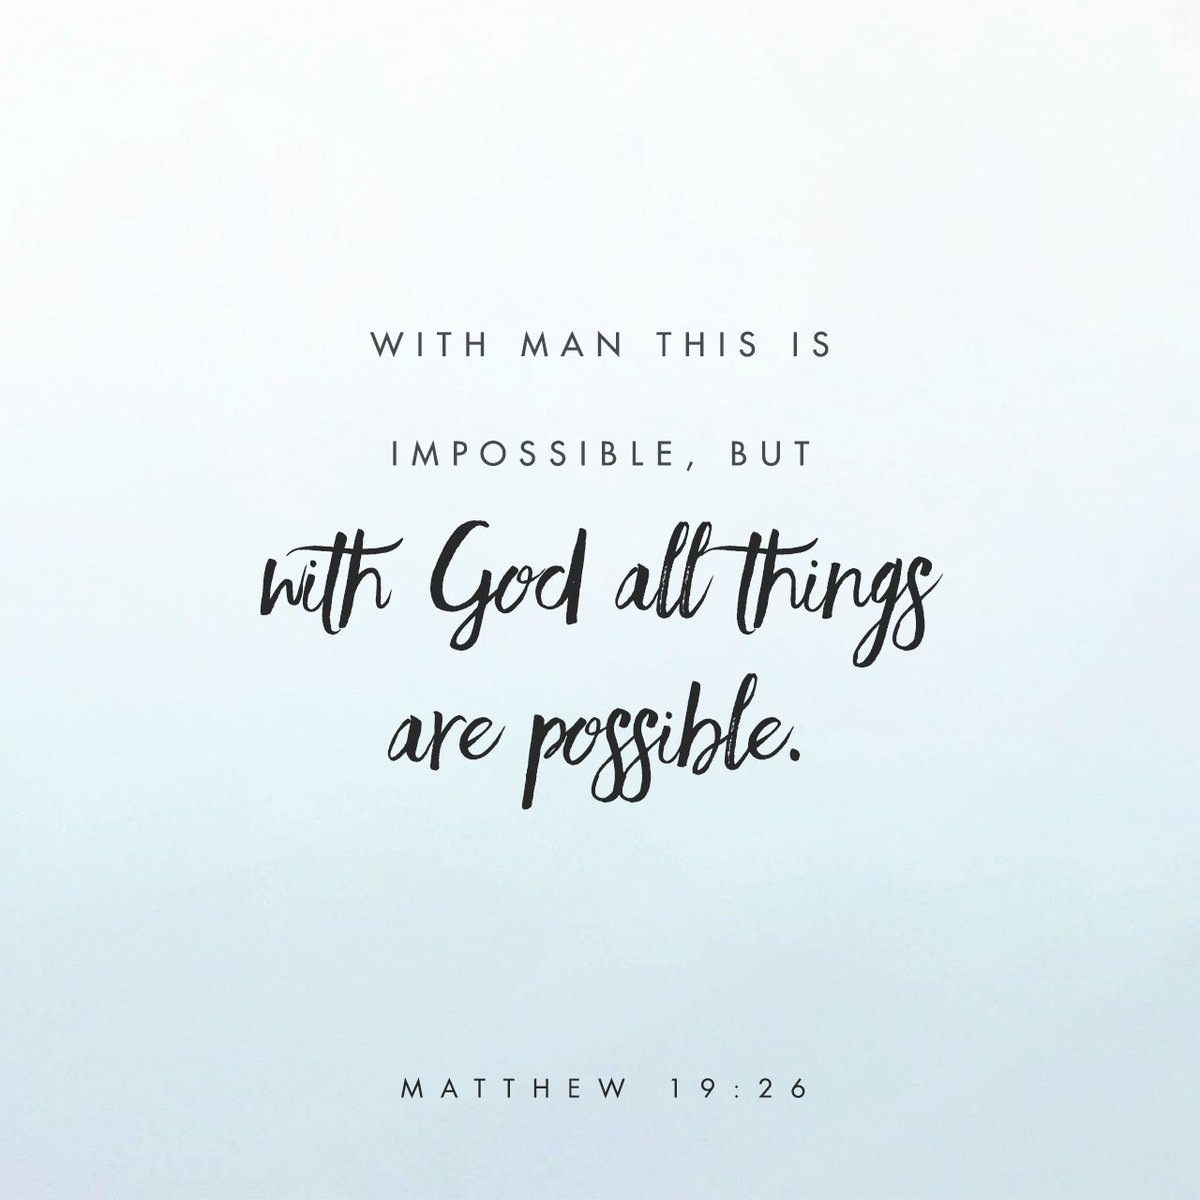 """Jesus looked at them and said,""""With man this is impossible, but with God all things are… https://t.co/5DEBSYgCJU https://t.co/qXxvqcJ9P9"""